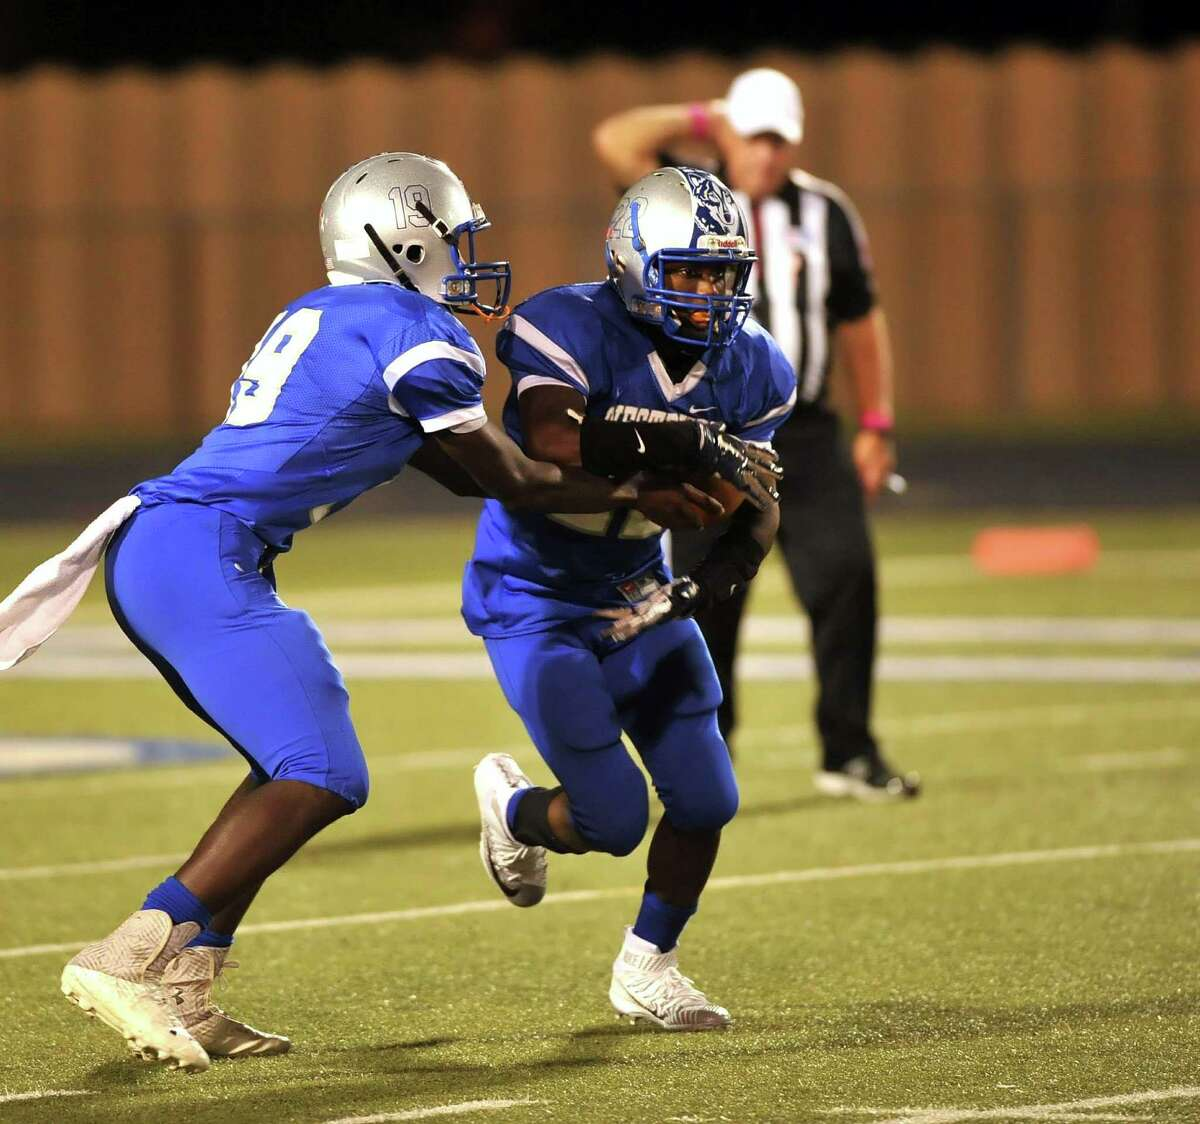 Westbury quarterback Travell Eman-Henshaw (19) and running back Myles Stennis (22) are two reasons that Huskies' new coach Greg Wilson has high hopes for a quick resurgence at his alma mater.